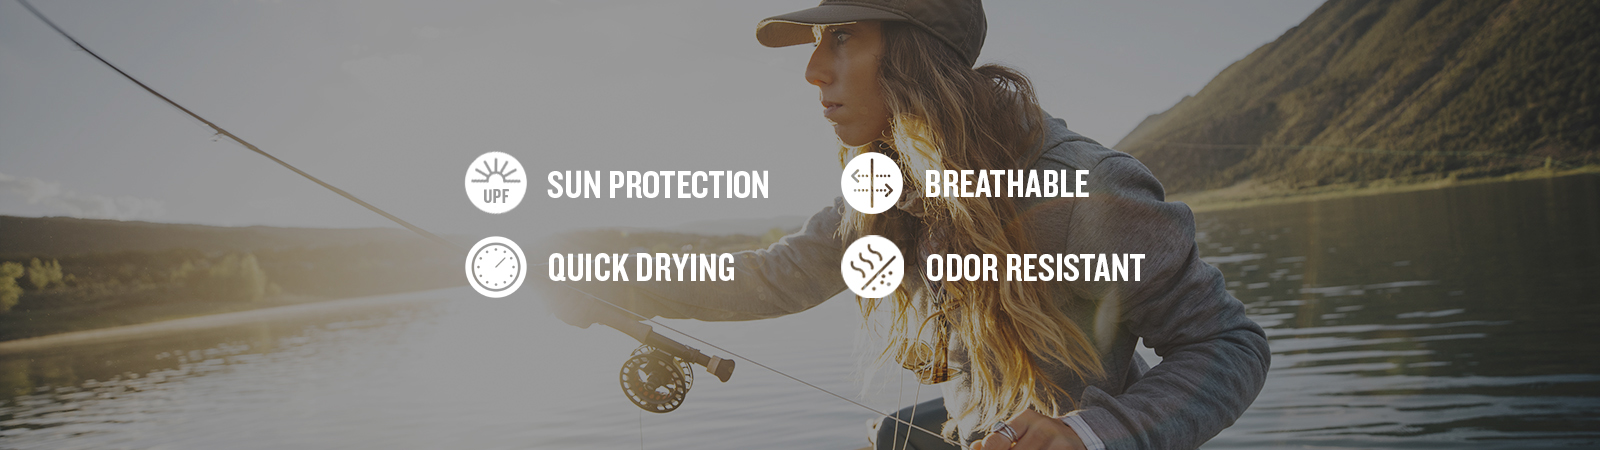 featuring these technologies: sun protection, breathable, quick drying and odor resistant.